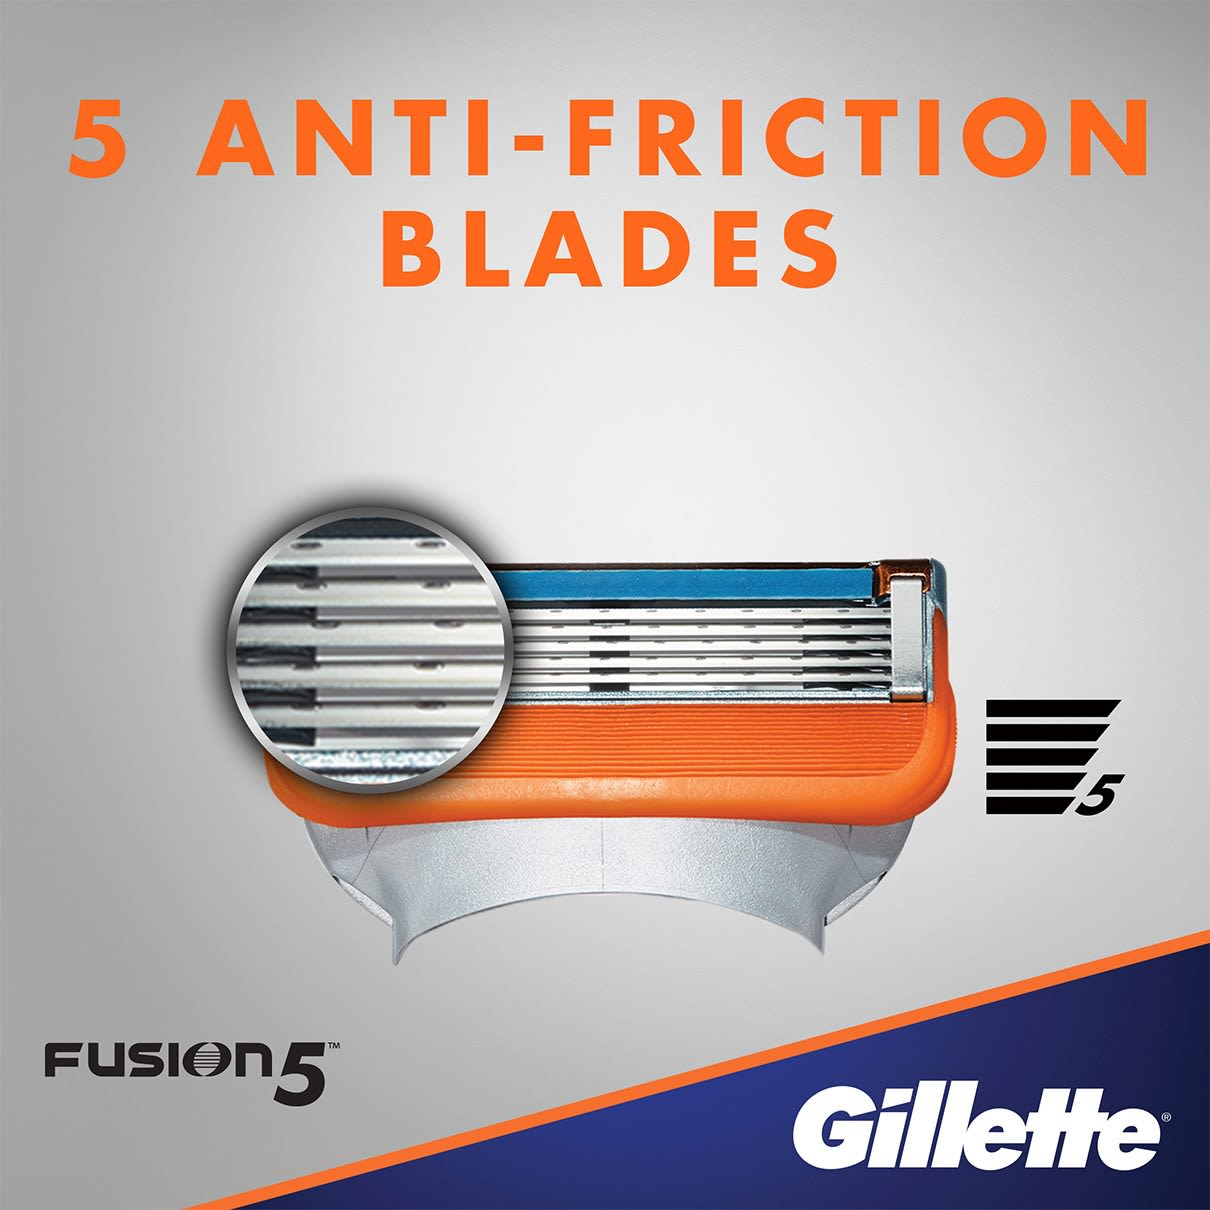 5 anti-friction blades